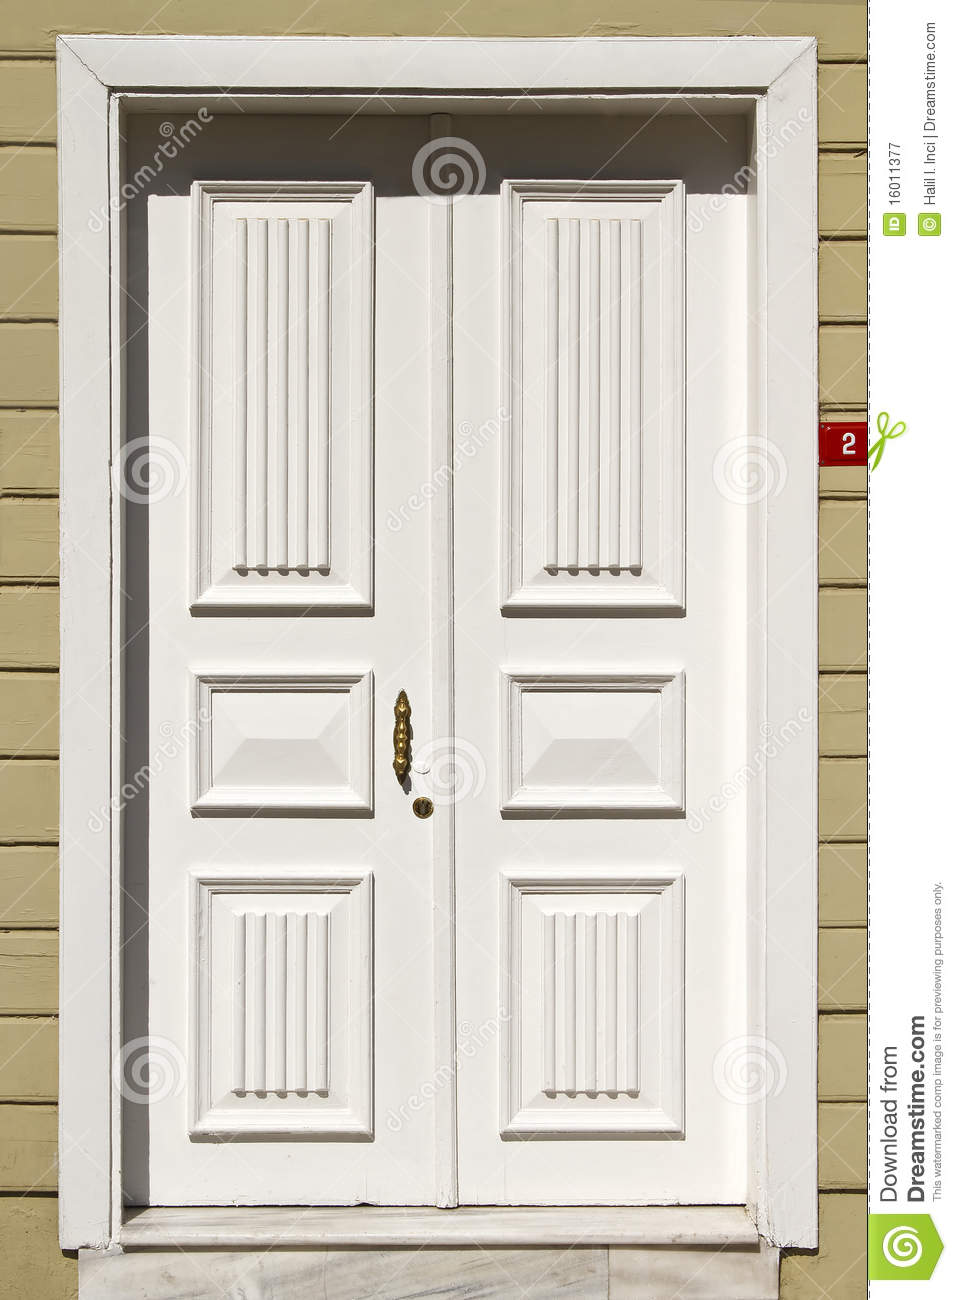 Wooden white front door stock image Image of residence 16011377